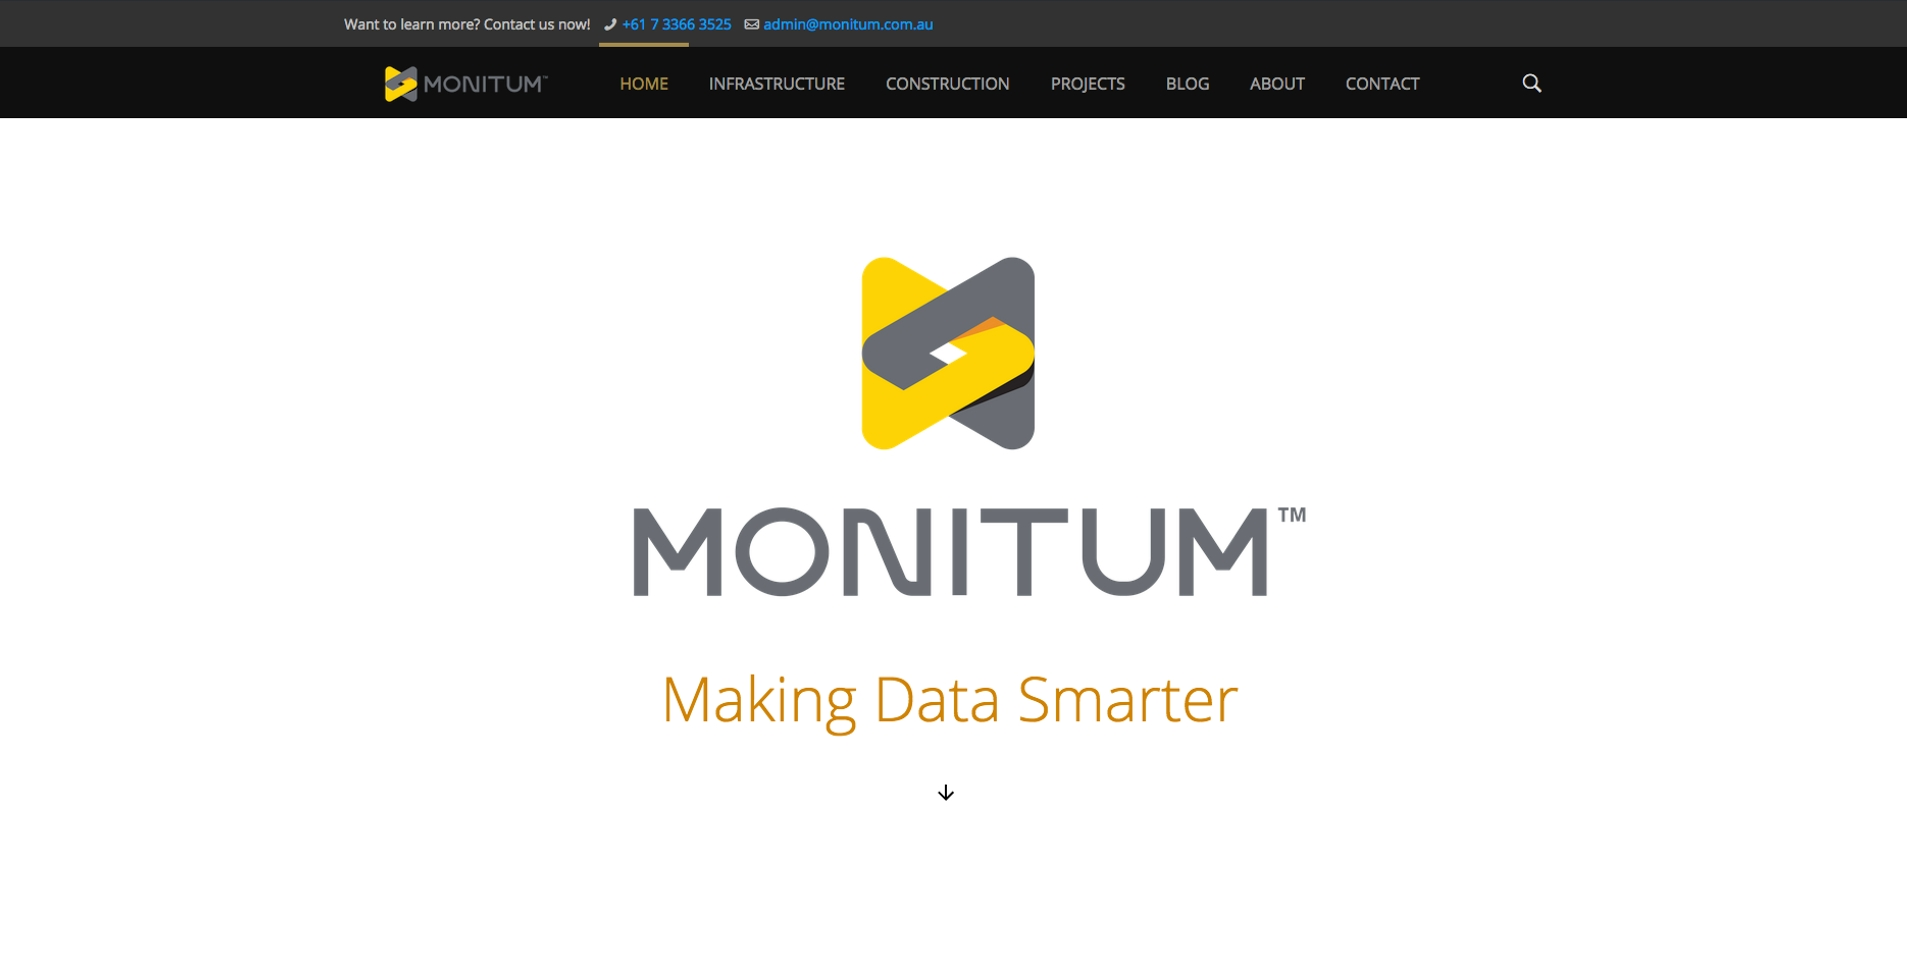 Monitum logo and brand development